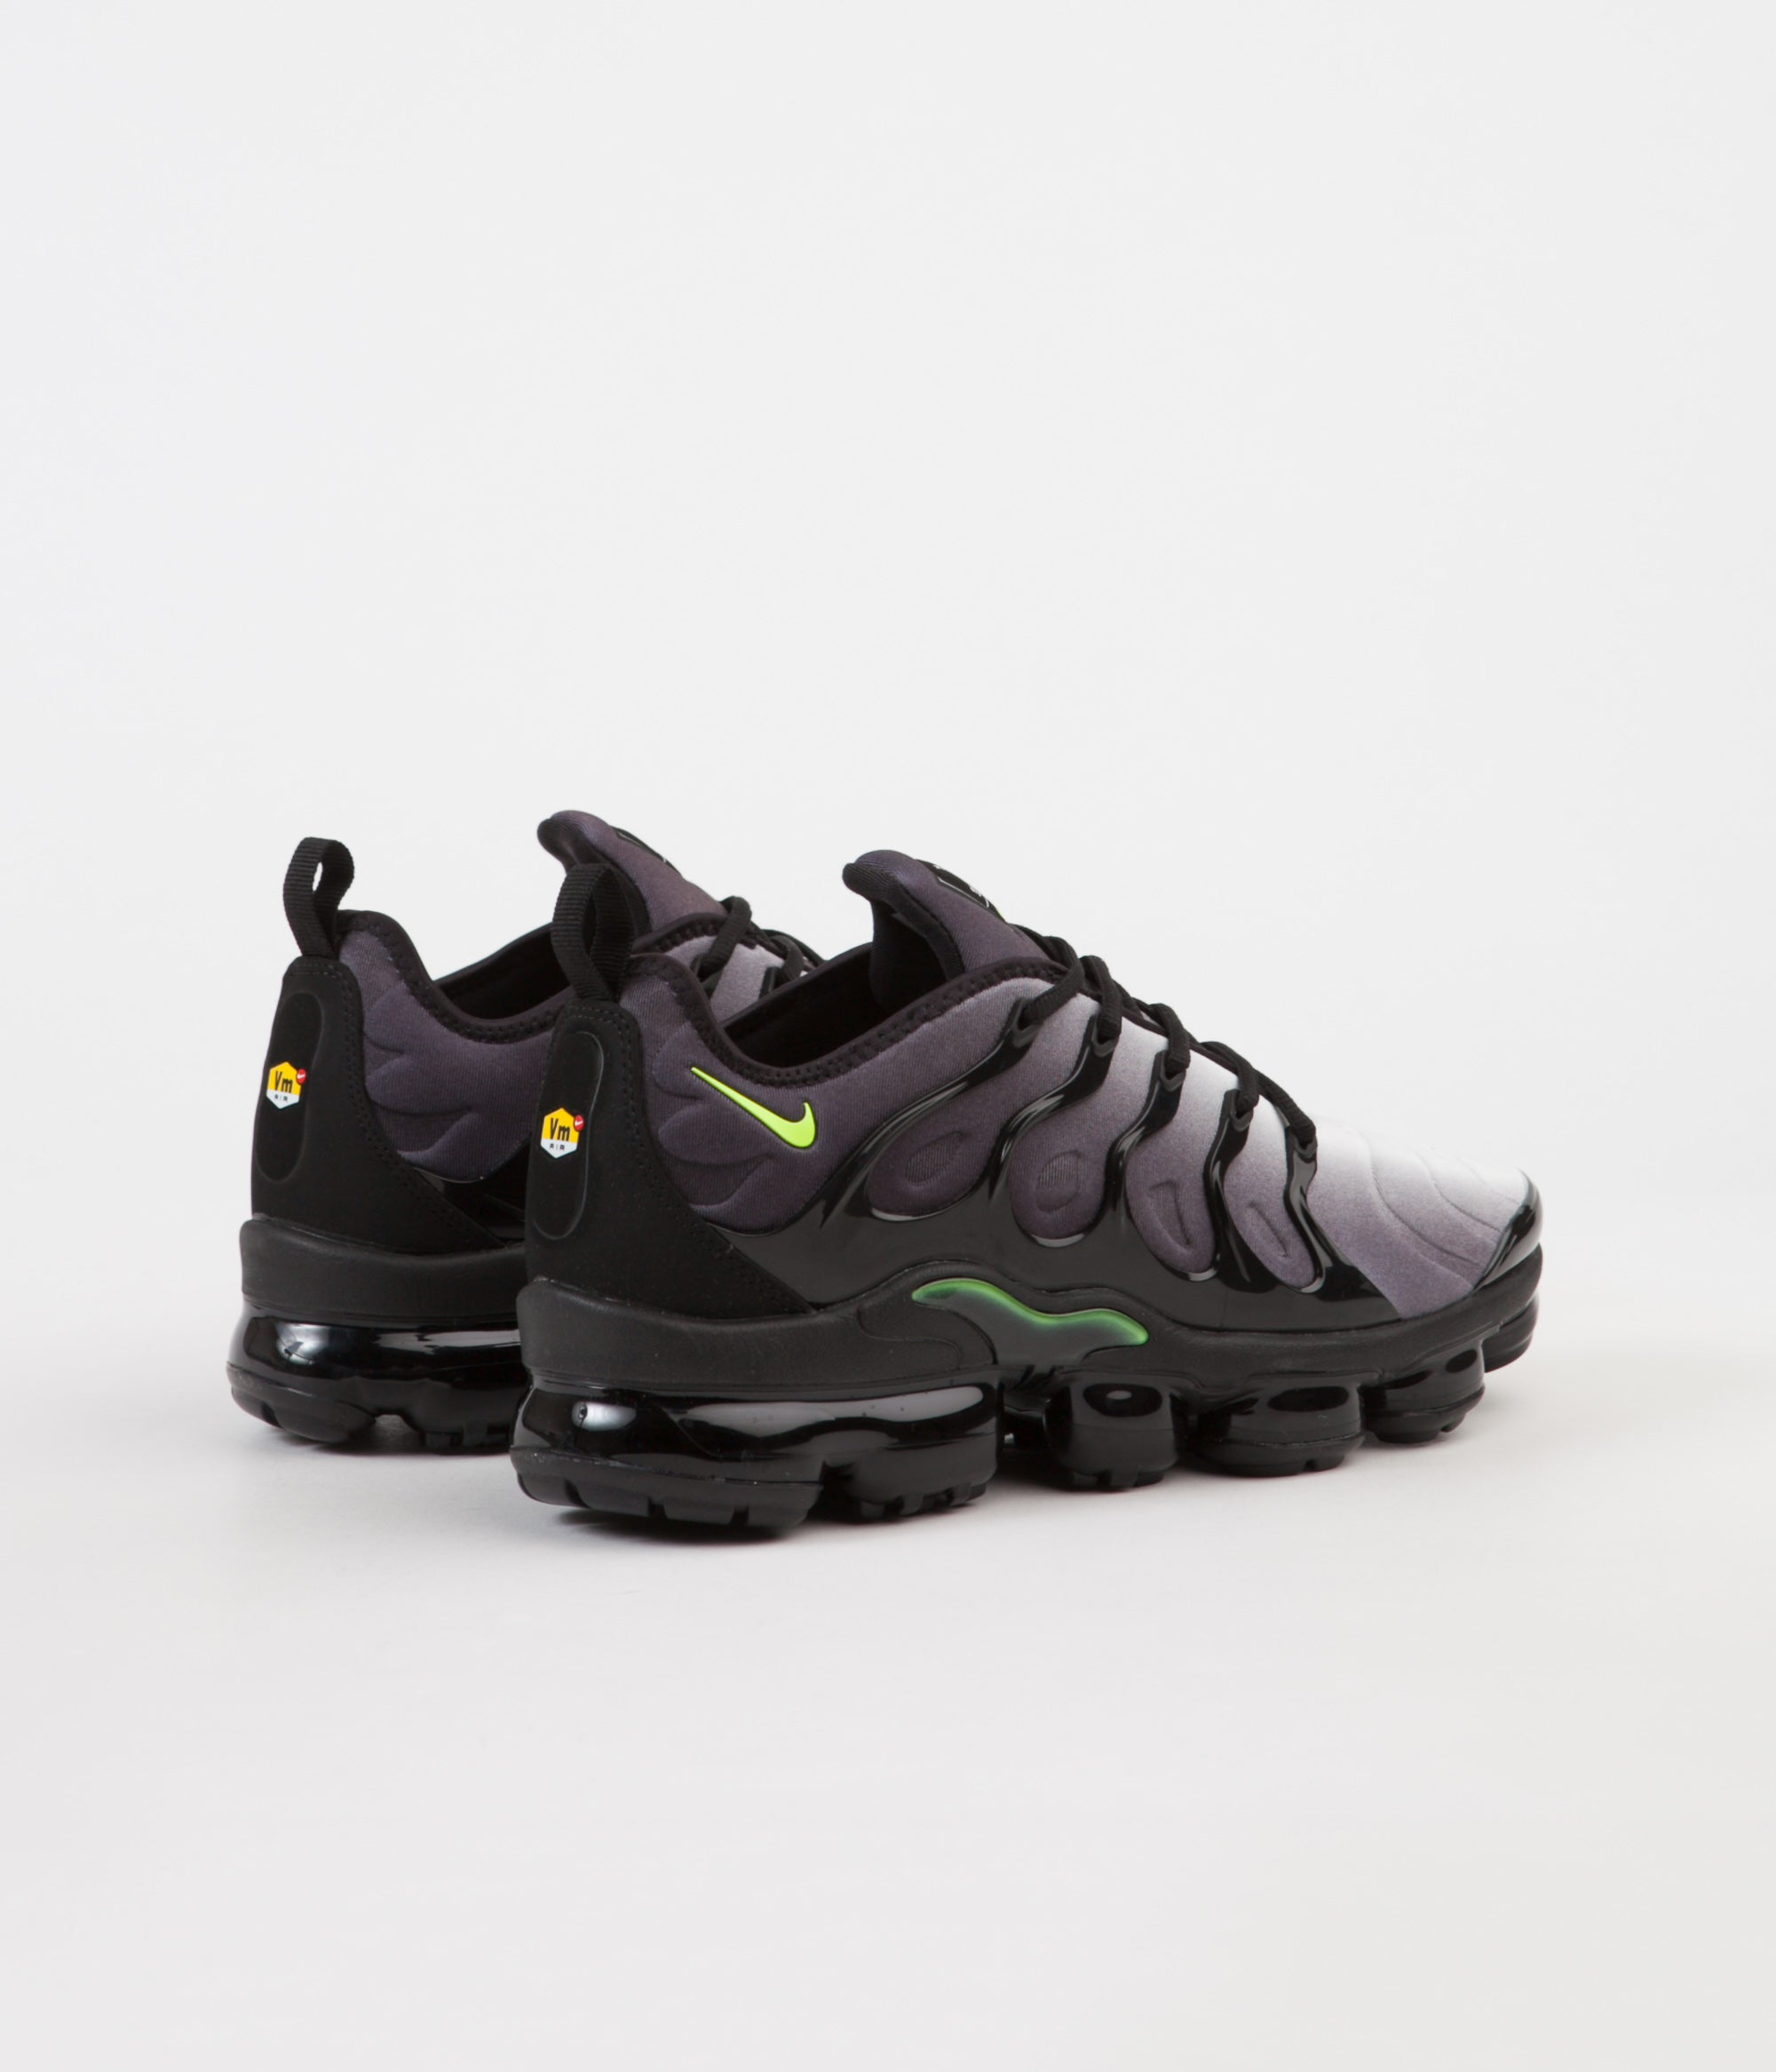 696da97895704 ... Nike Air VaporMax Plus Shoes - Black   Volt - White ...